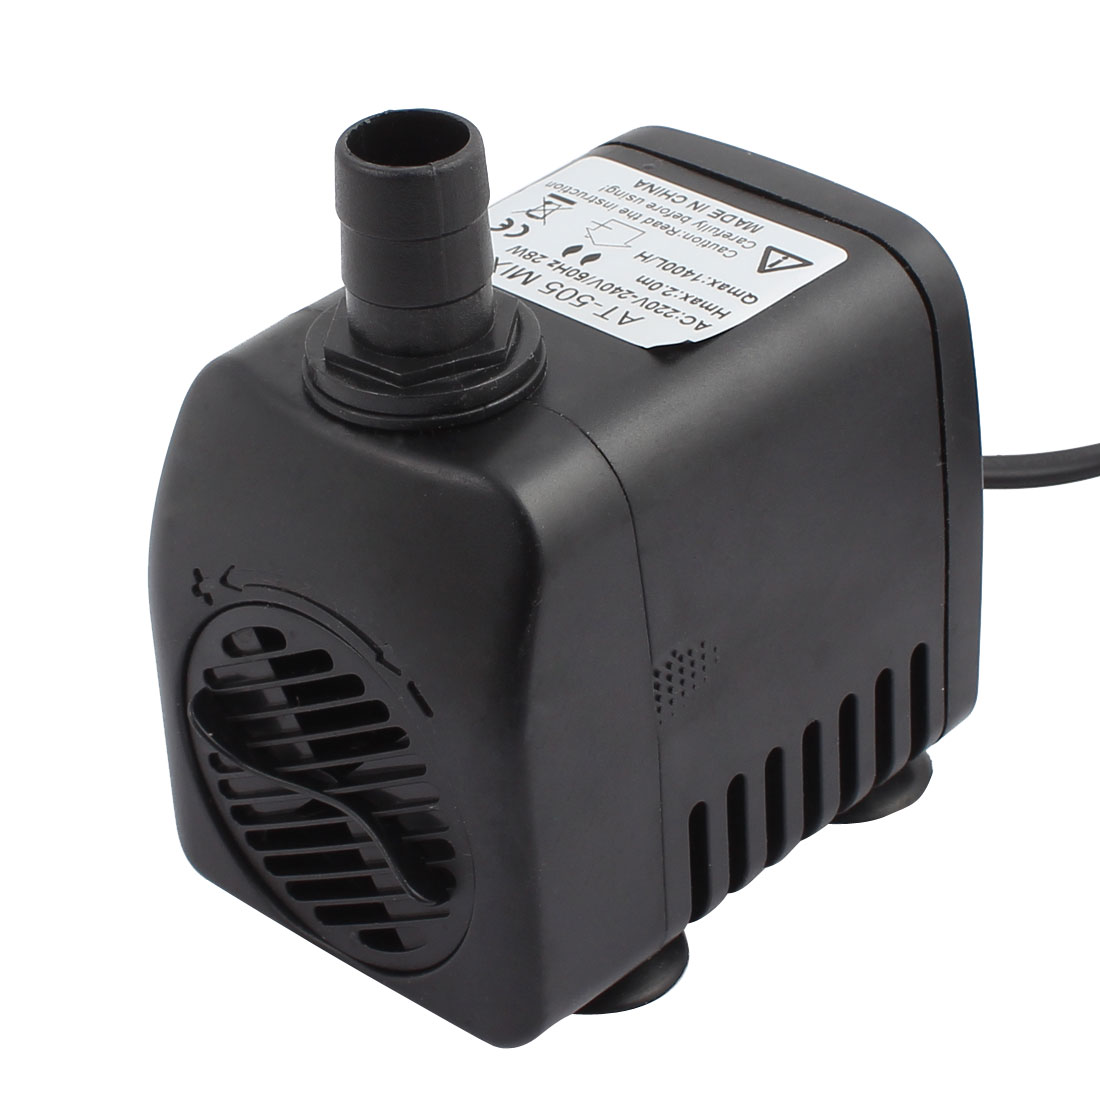 AC 220V-240V EU Plug 28W Electric Submersible Water Pump Aquarium Fountain